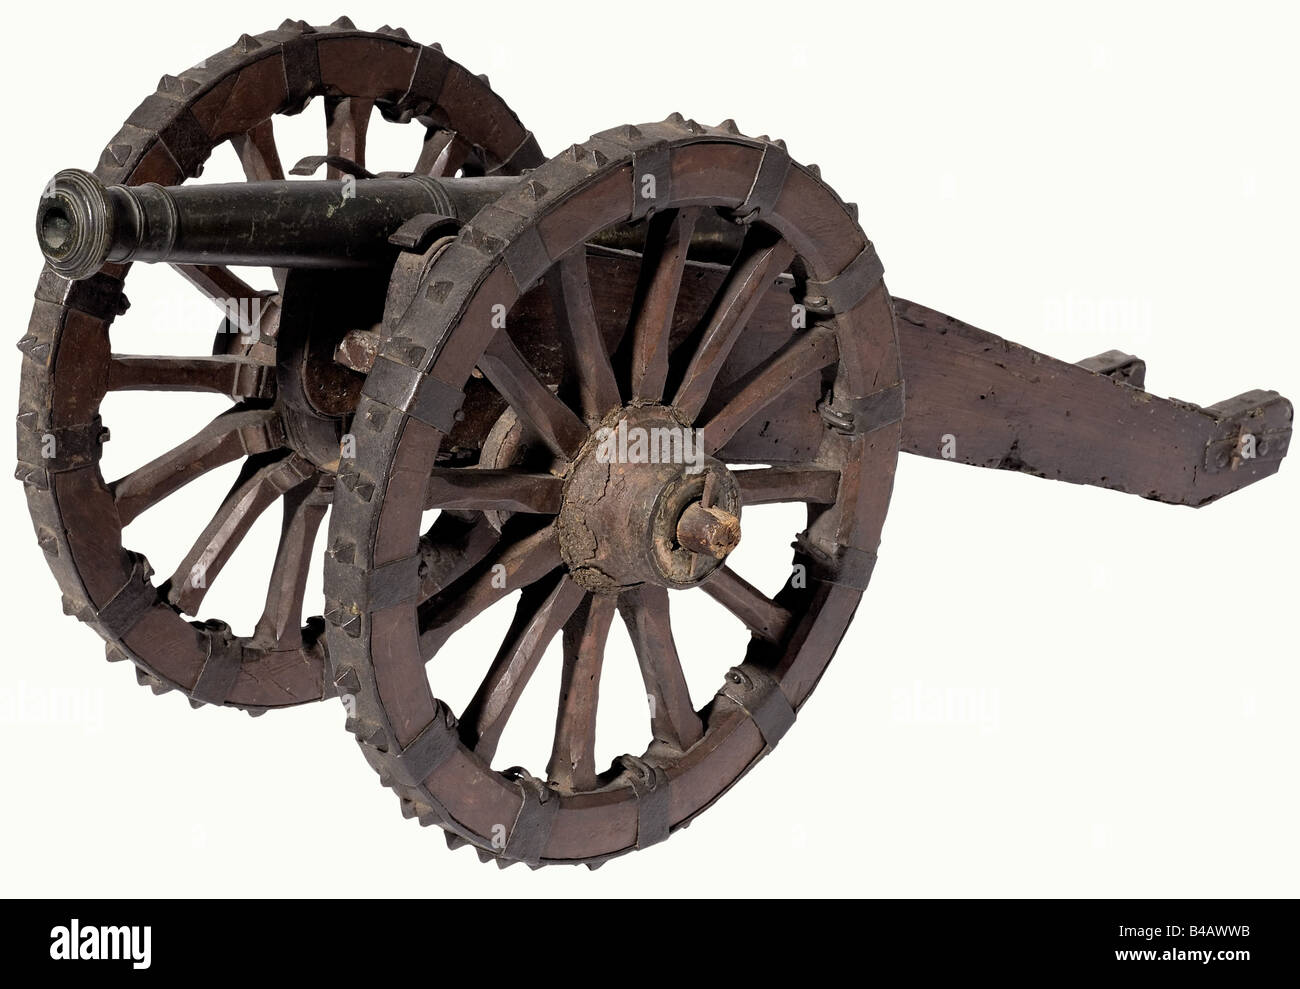 A model field gun, 17th century. Slender bronze barrel in 15 mm caliber with a cannon muzzle, side trunnions, vent - Stock Image